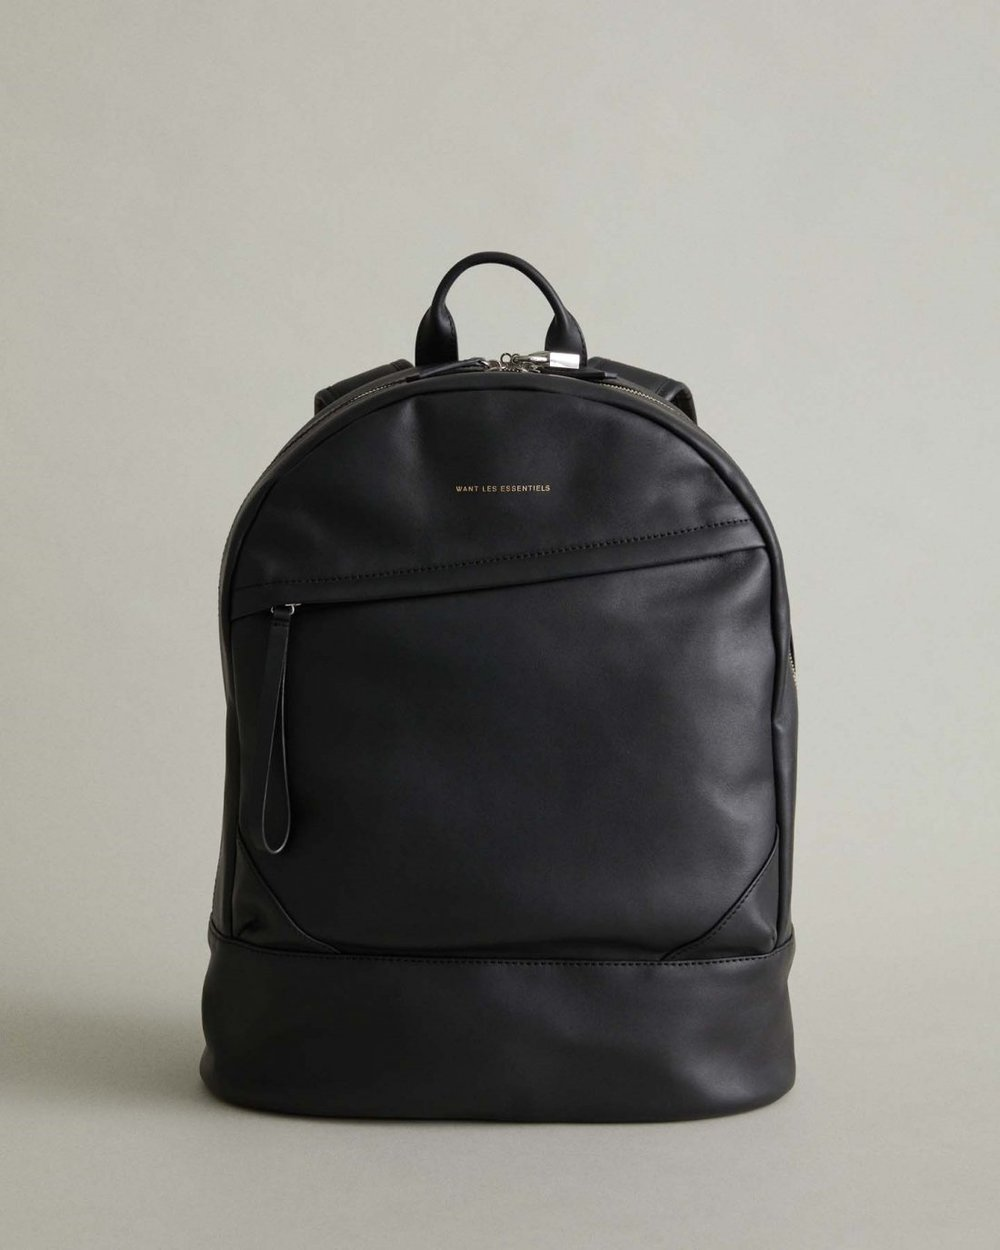 $695 - Want Les Essentiels leather backpack   Who doesn't love a great leather backpack?! And who actually loves carrying around a briefcase (#shoulderpain)?? This backpack is perfect for the office and also tells your co-workers you're still cool without carrying around your old college backpack.